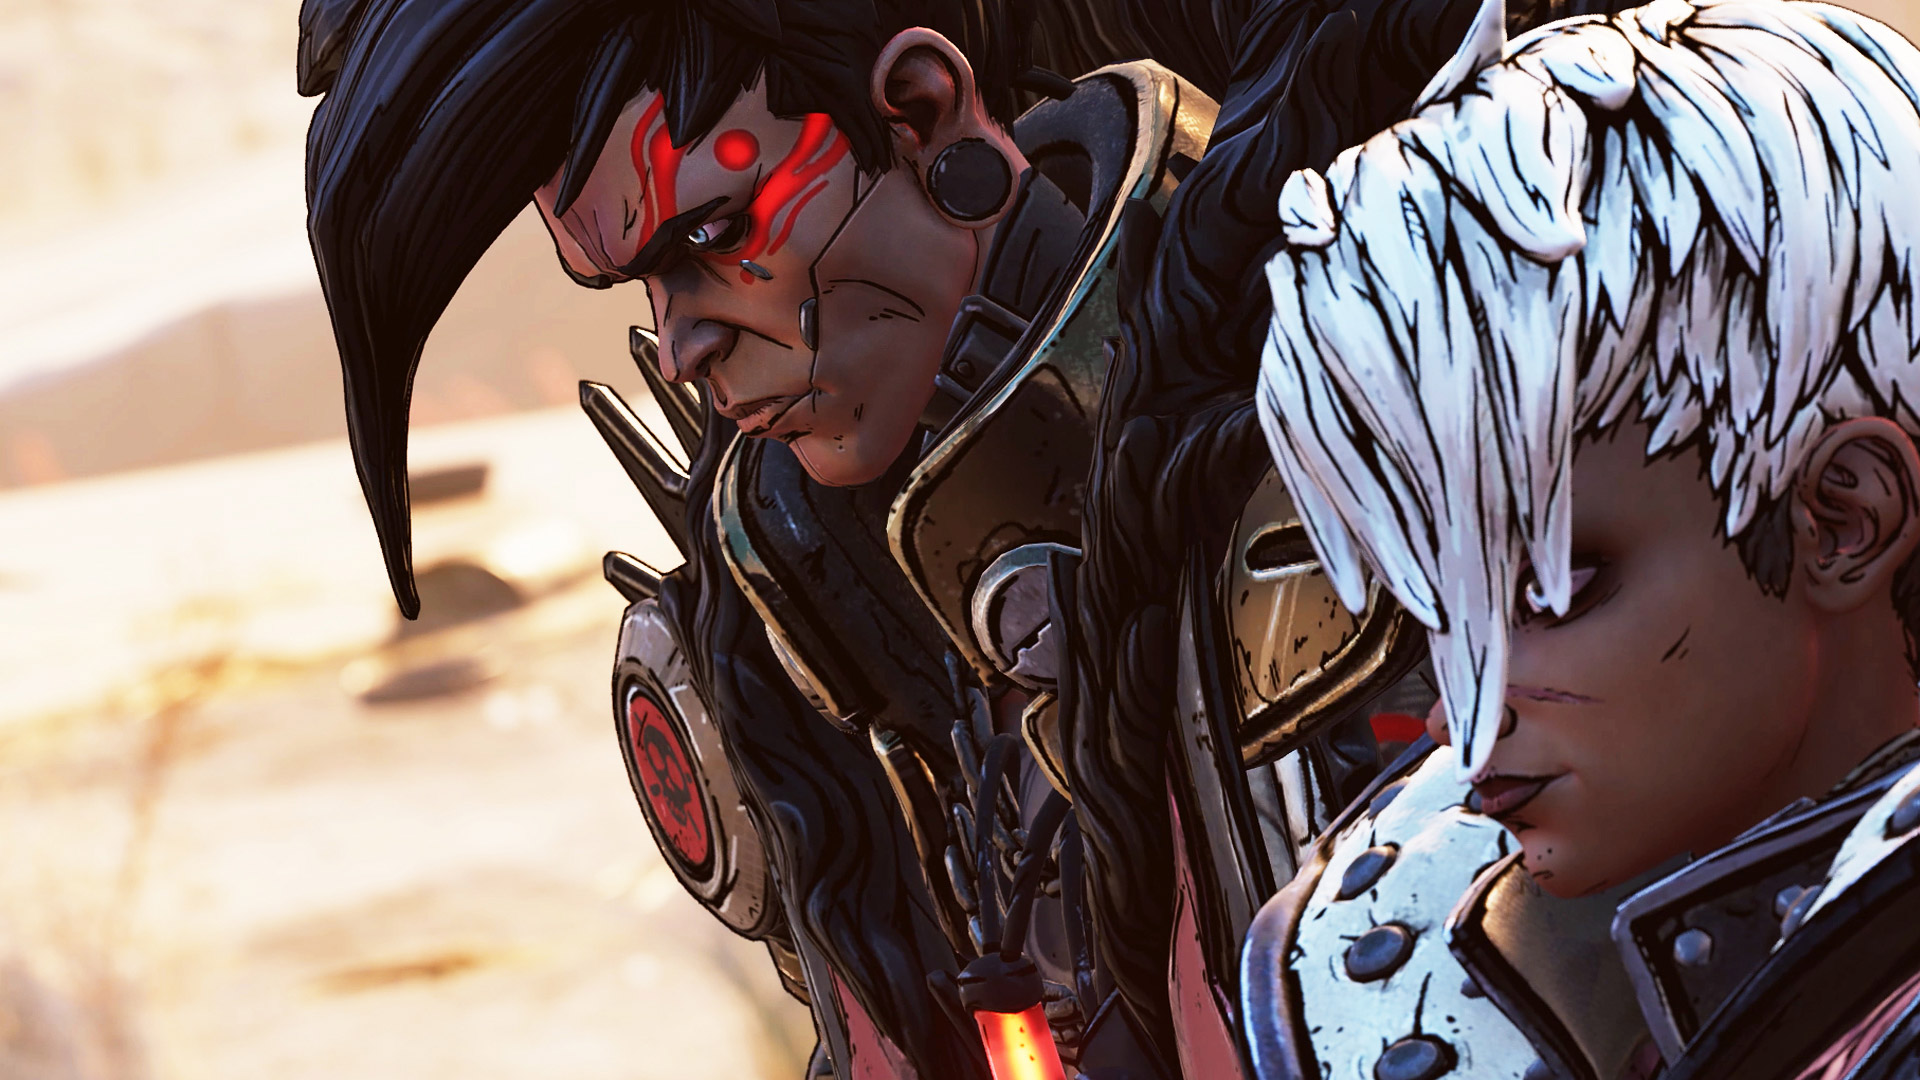 Free Borderlands 3 Wallpaper In 1920x1080